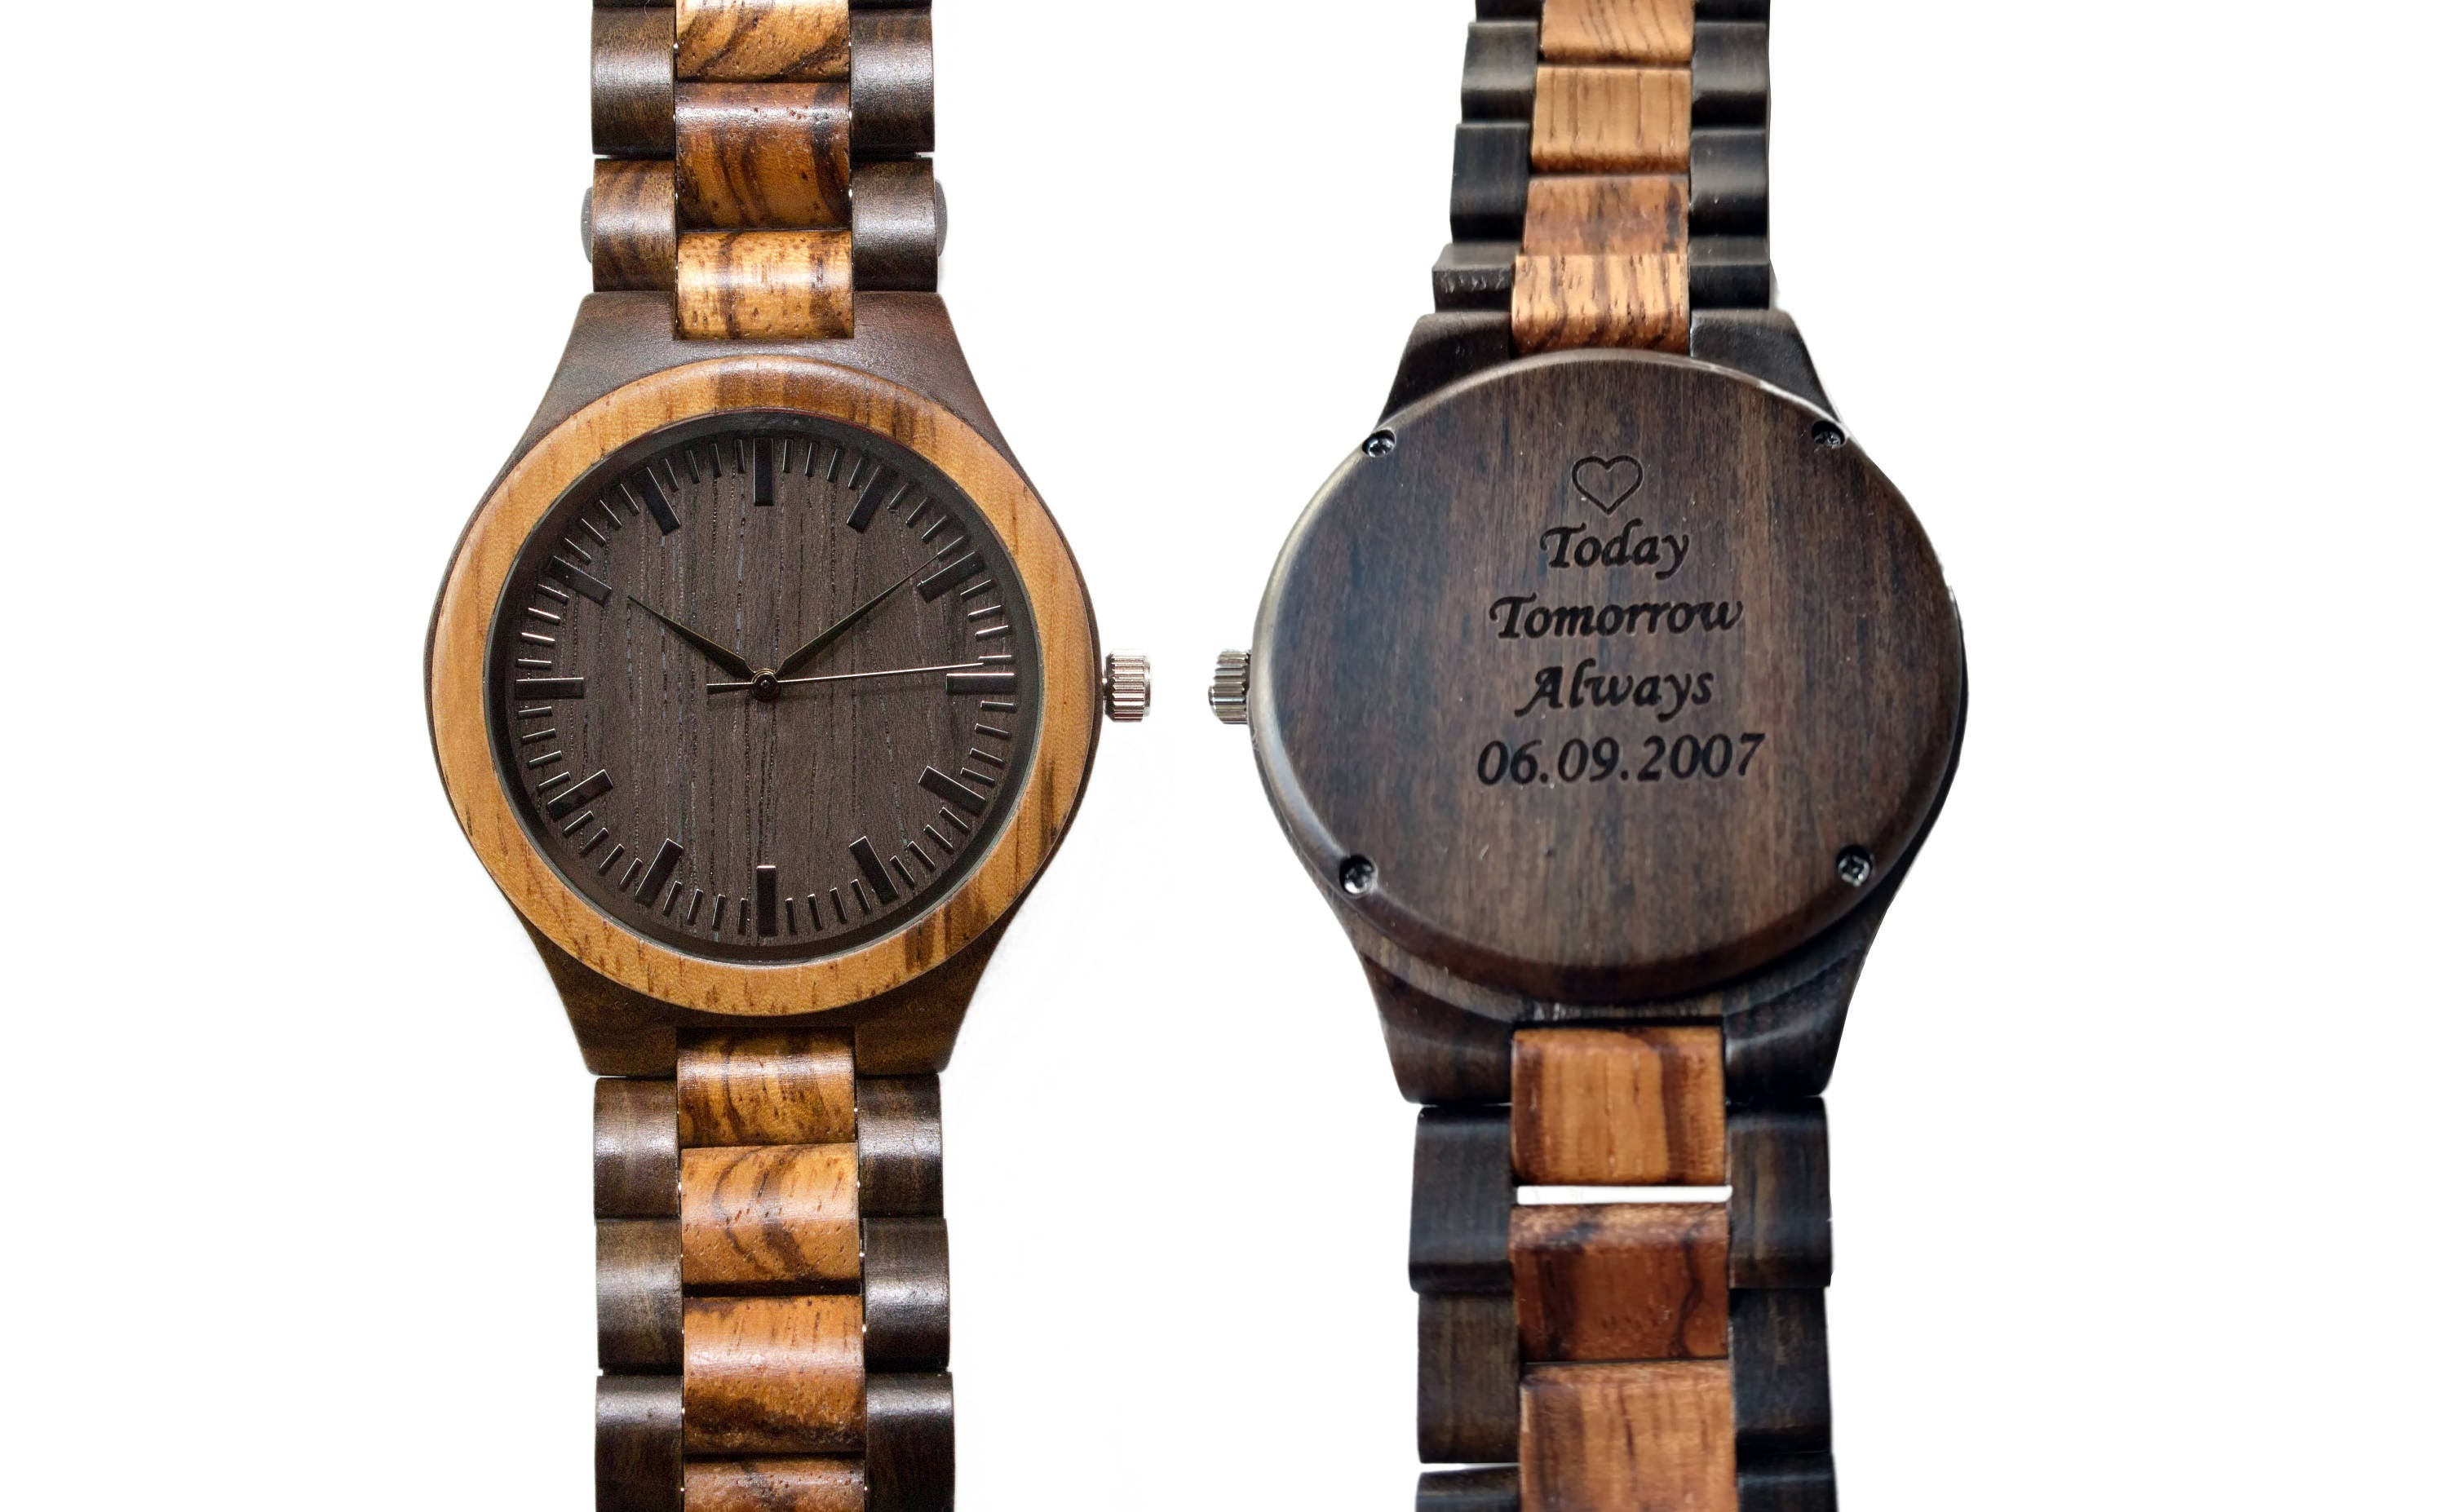 Fifth Wedding Anniversary Gifts For Men: Engraved Wood Watch Men 5th Anniversary Gift Personalized